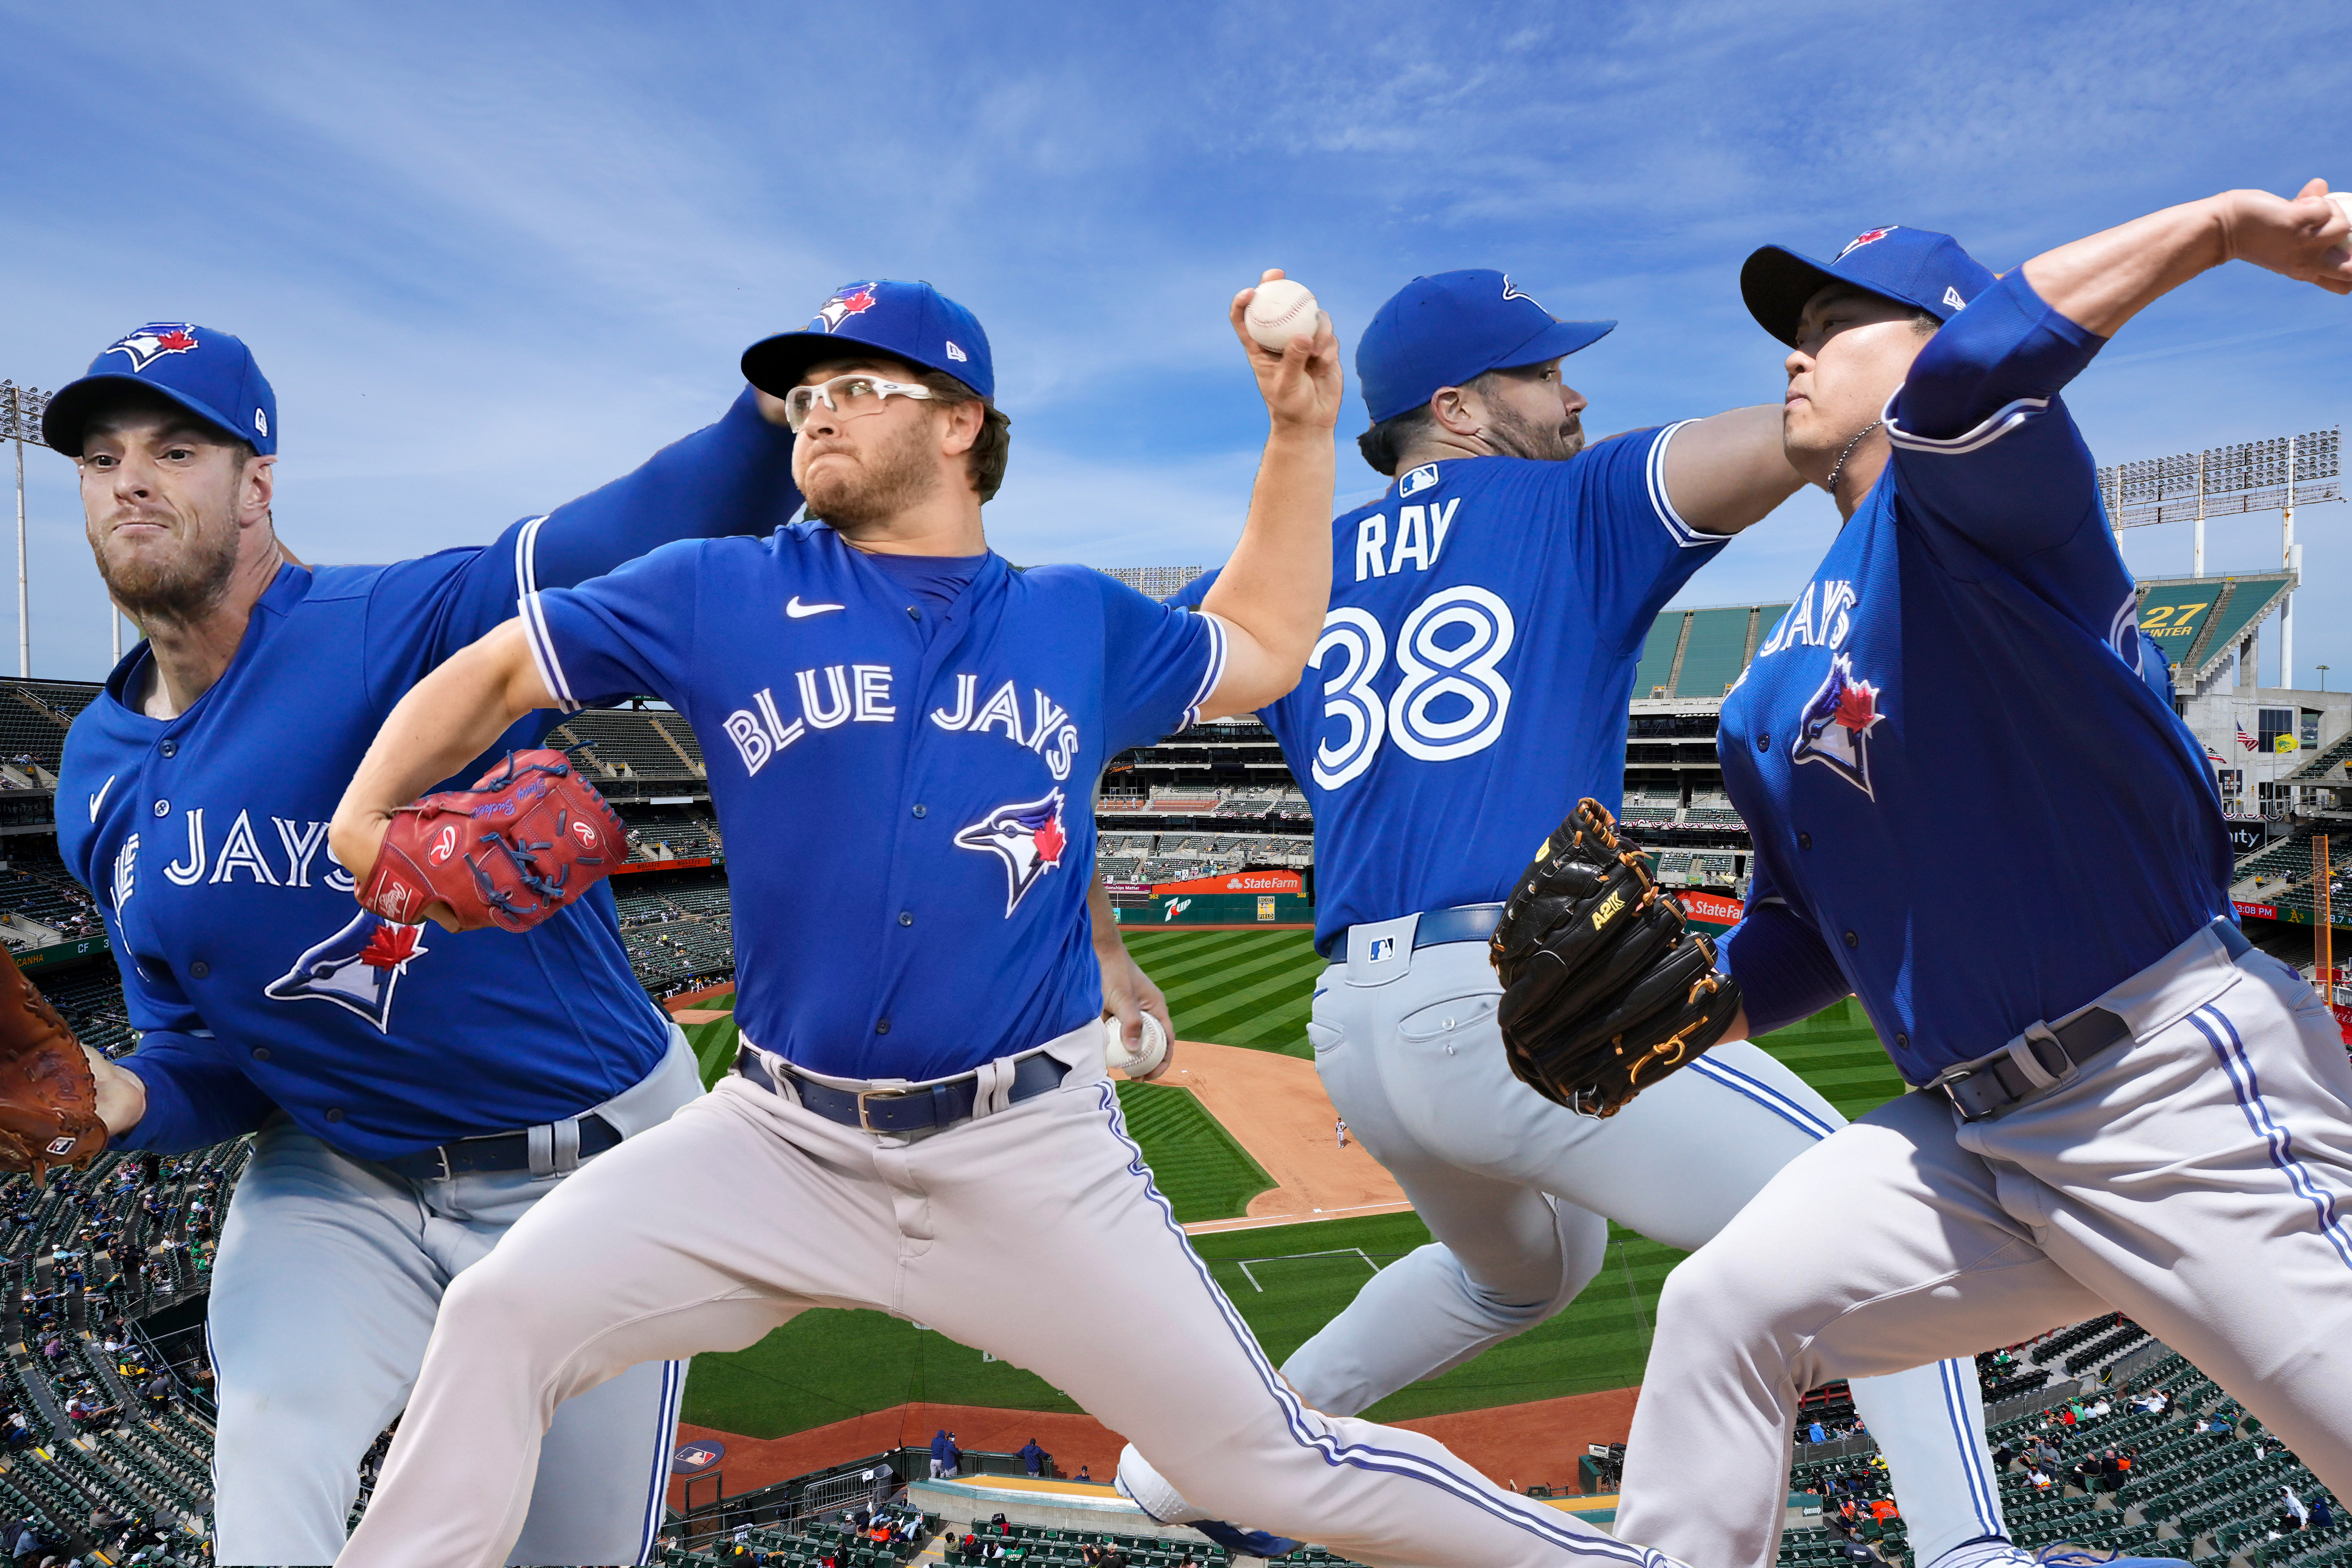 Composite photo of pitchers Steven Matz, Anthony Kay, Robbie Ray, and Hyun Jin Ryu of the Toronto Blue Jays